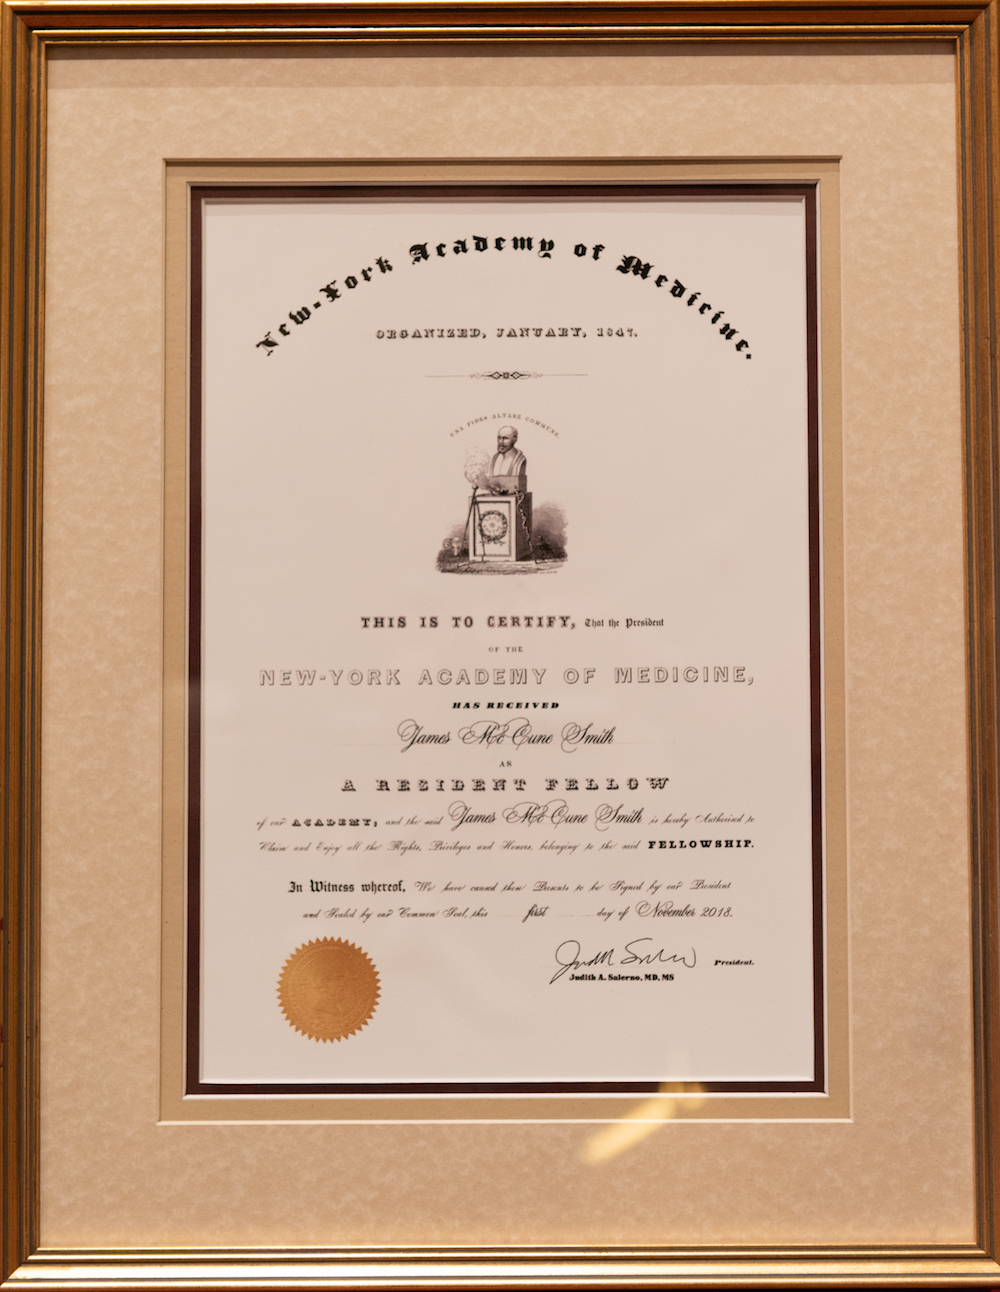 Dr. James McCune Smith's Certificate of Academy Fellowship